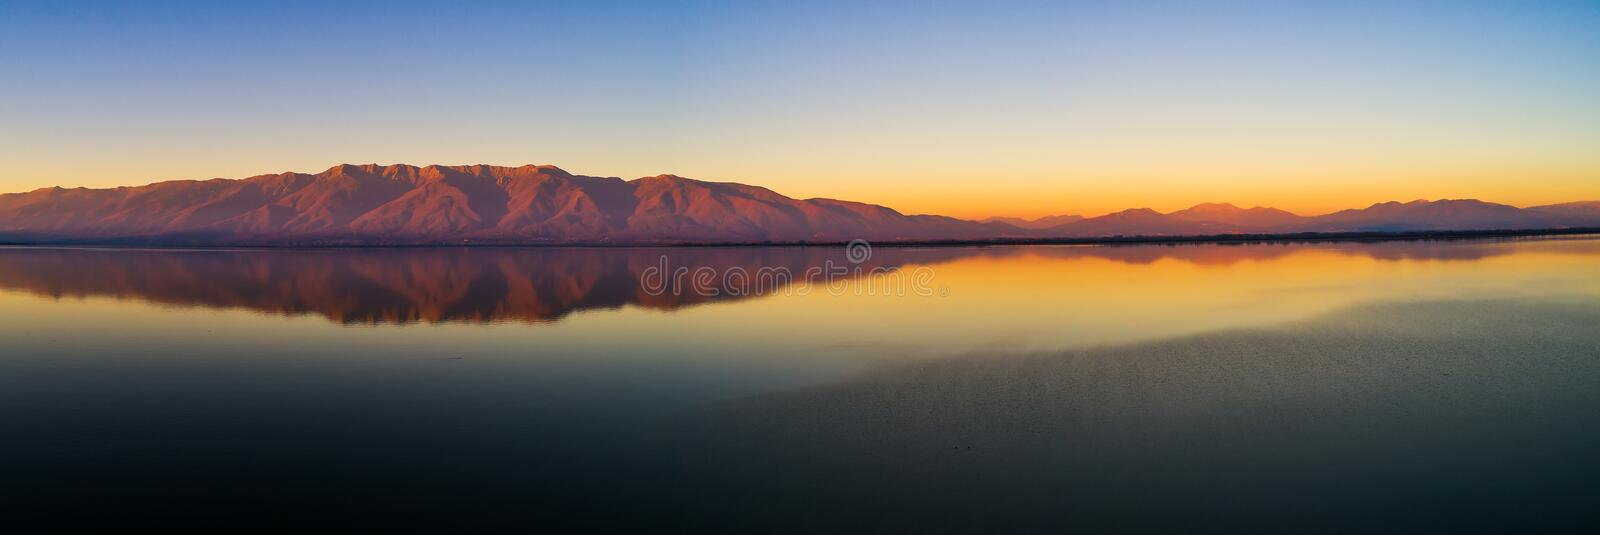 Aerial view of the artificial lake Kerkini and her mountain rang royalty free stock image